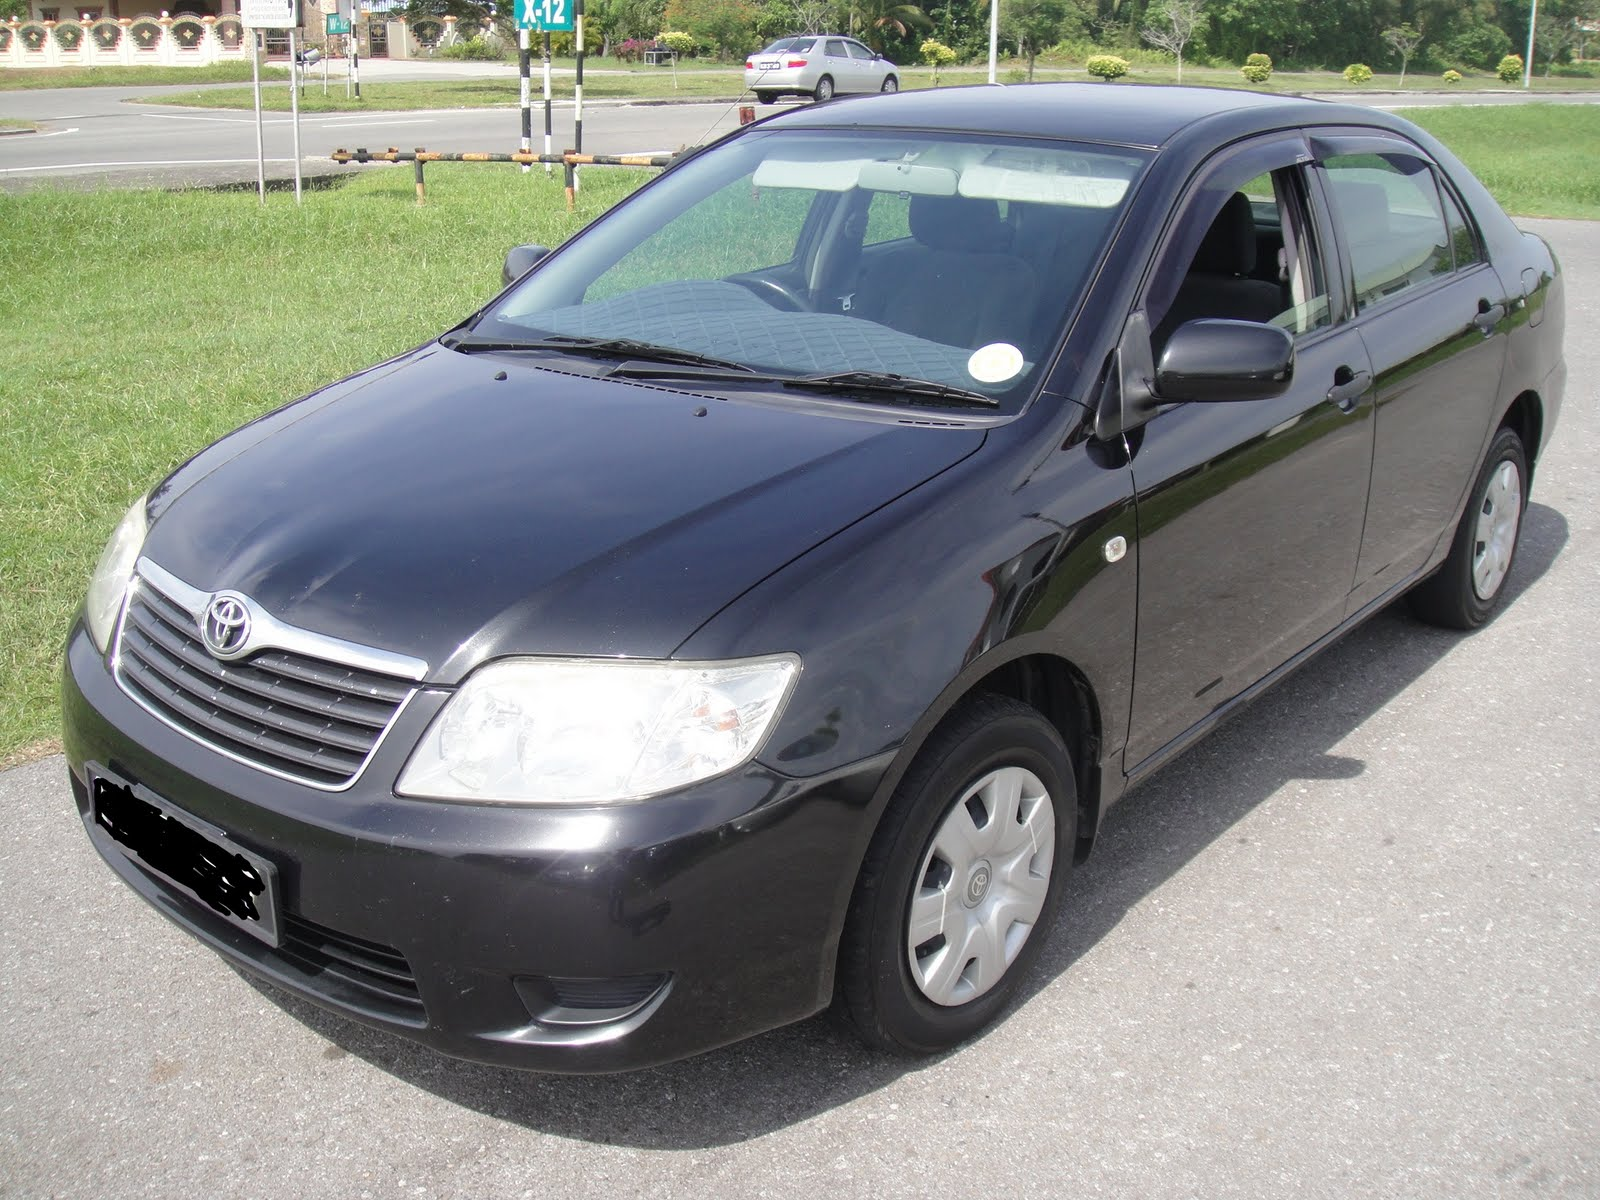 Toyota Corolla 2.0 2004 photo - 8